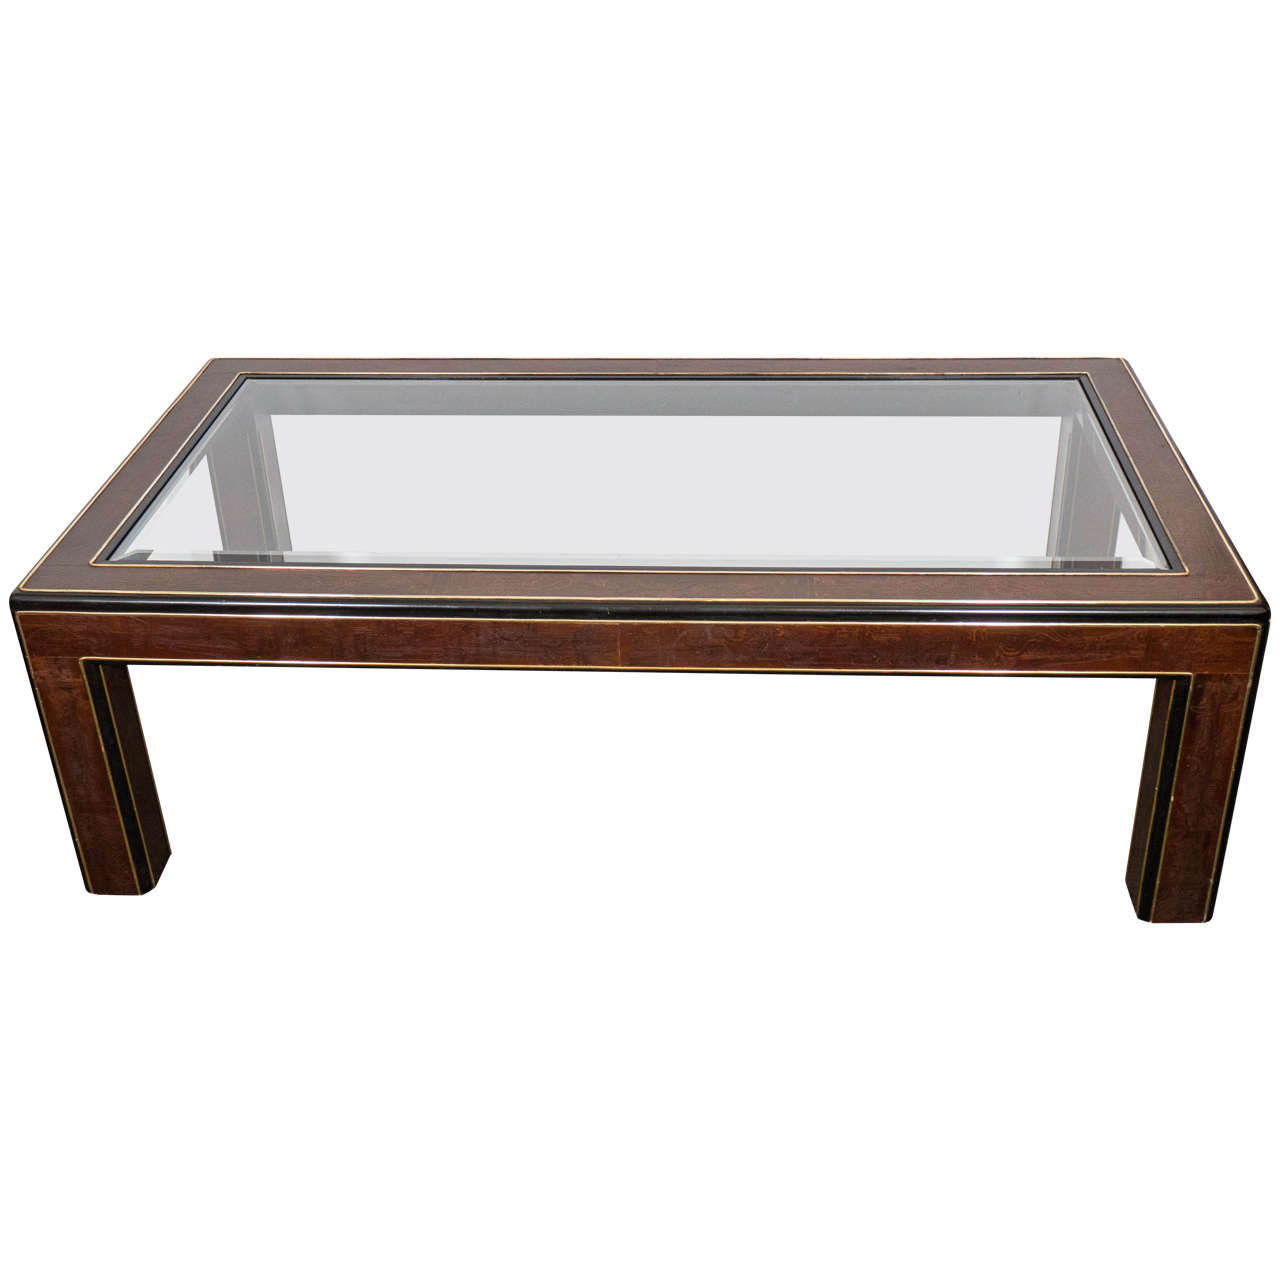 Midcentury Bernhard Rohne Acid Etched Brass Coffee Table for Mastercraft